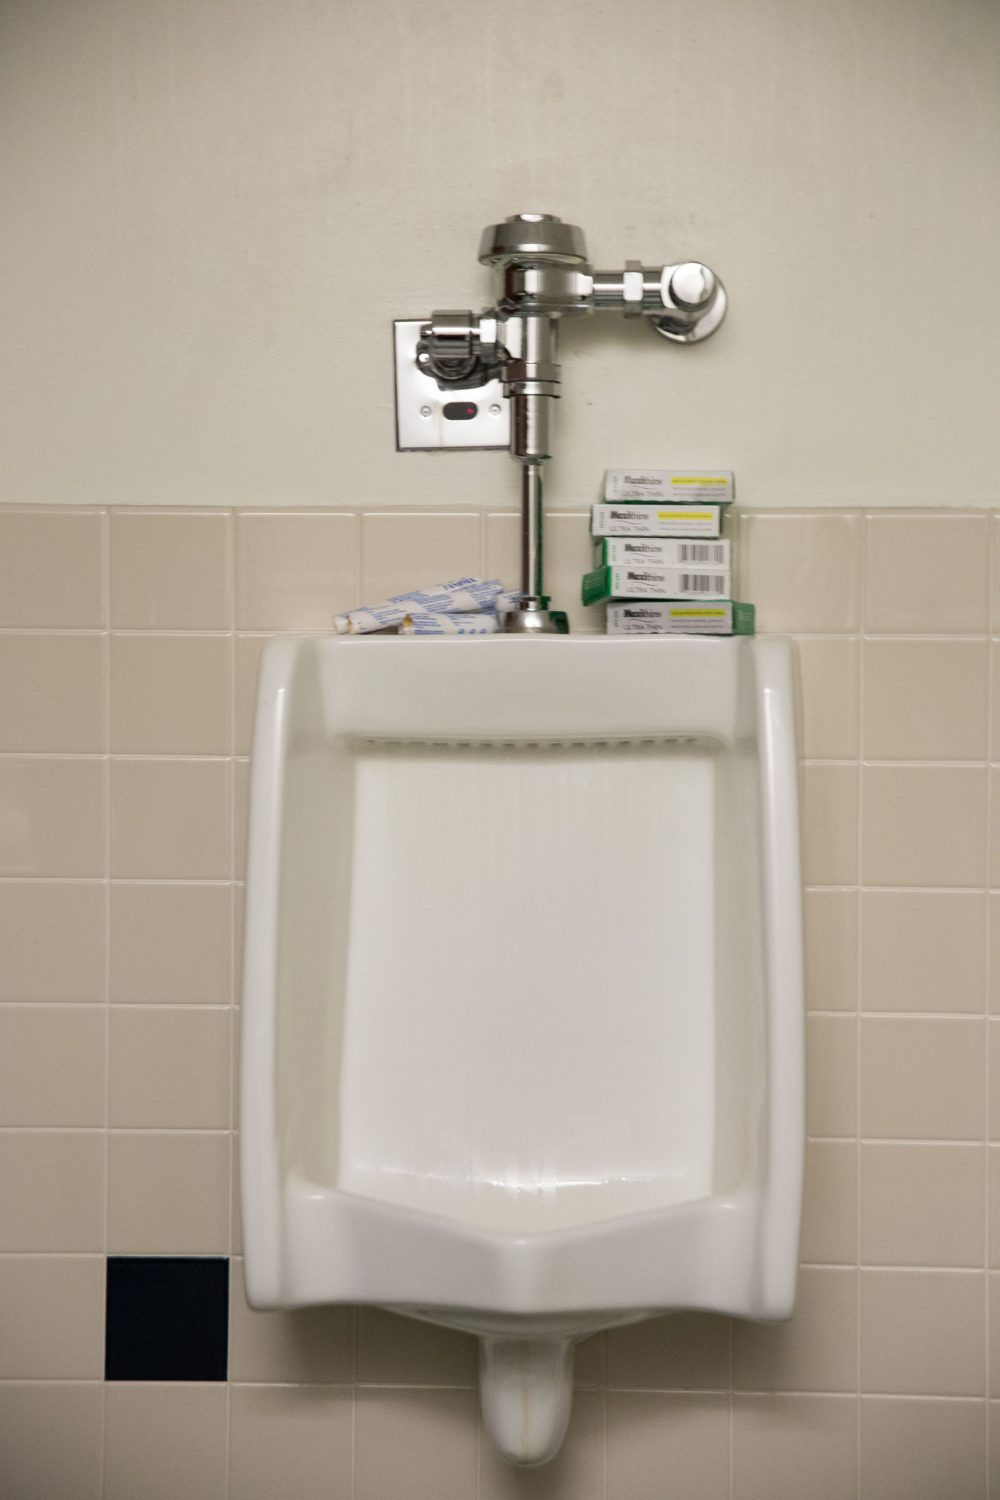 Feces found in men's room used tampon box – The Bowdoin Orient